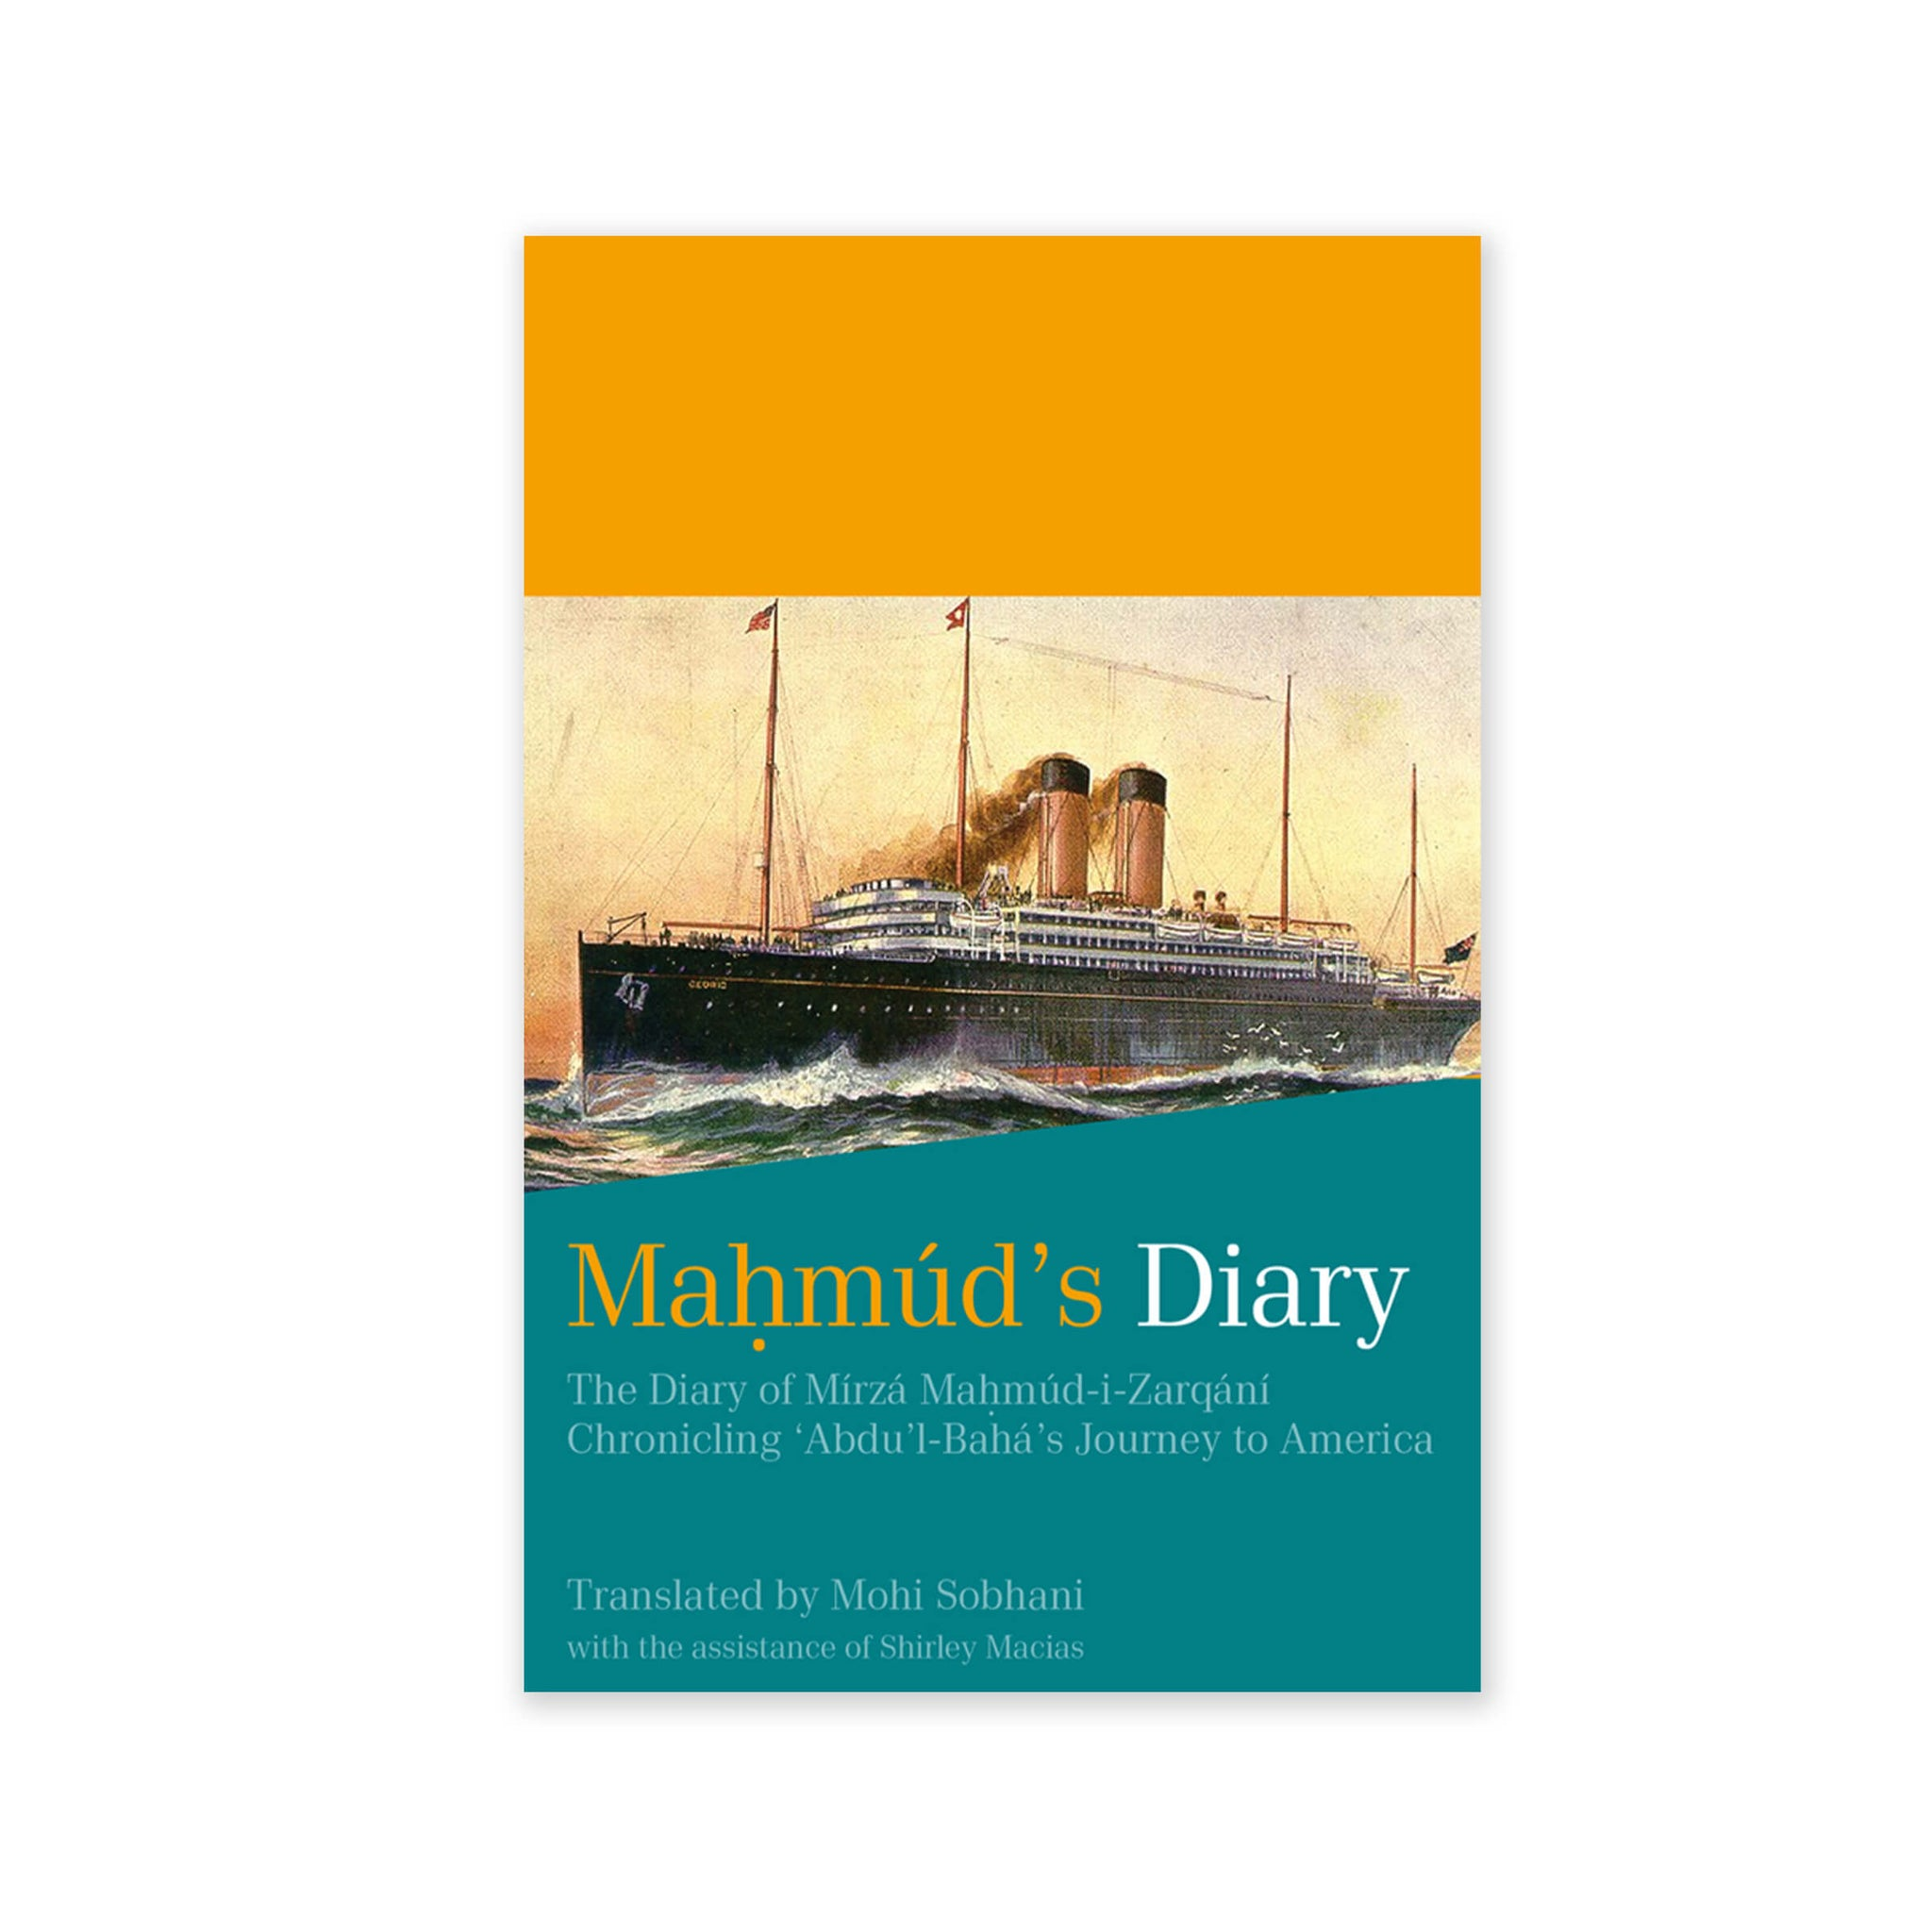 Mahmud's Diary - Chronicling Abdu'l-Baha's Journey to America